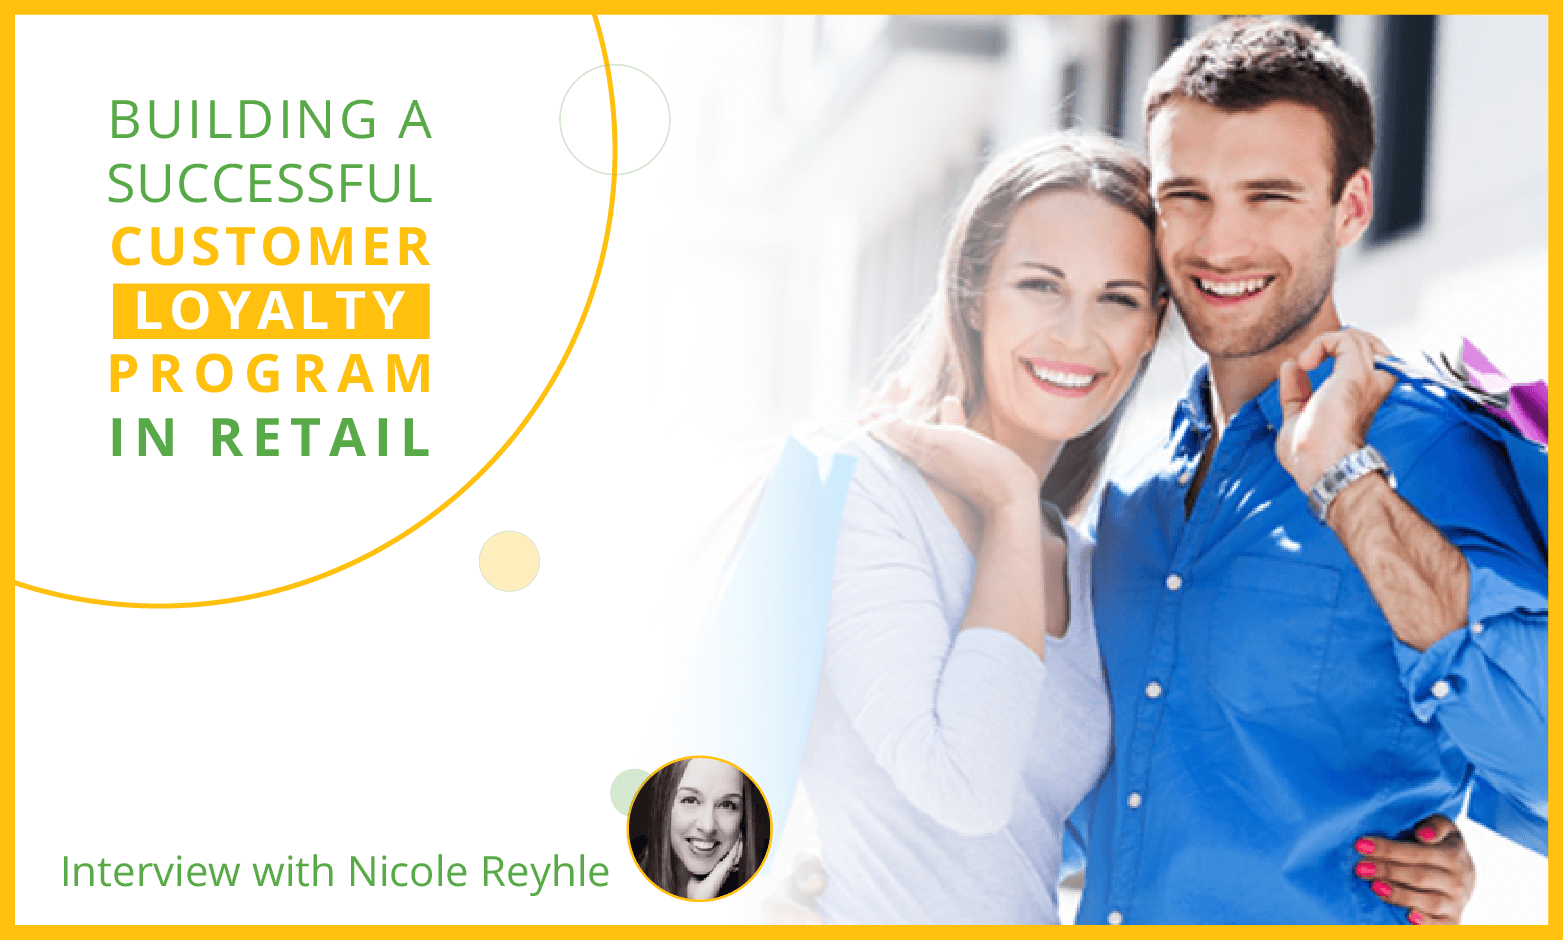 Building a Successful Customer Loyalty Program in Retail: Interview with Nicole Reyhle